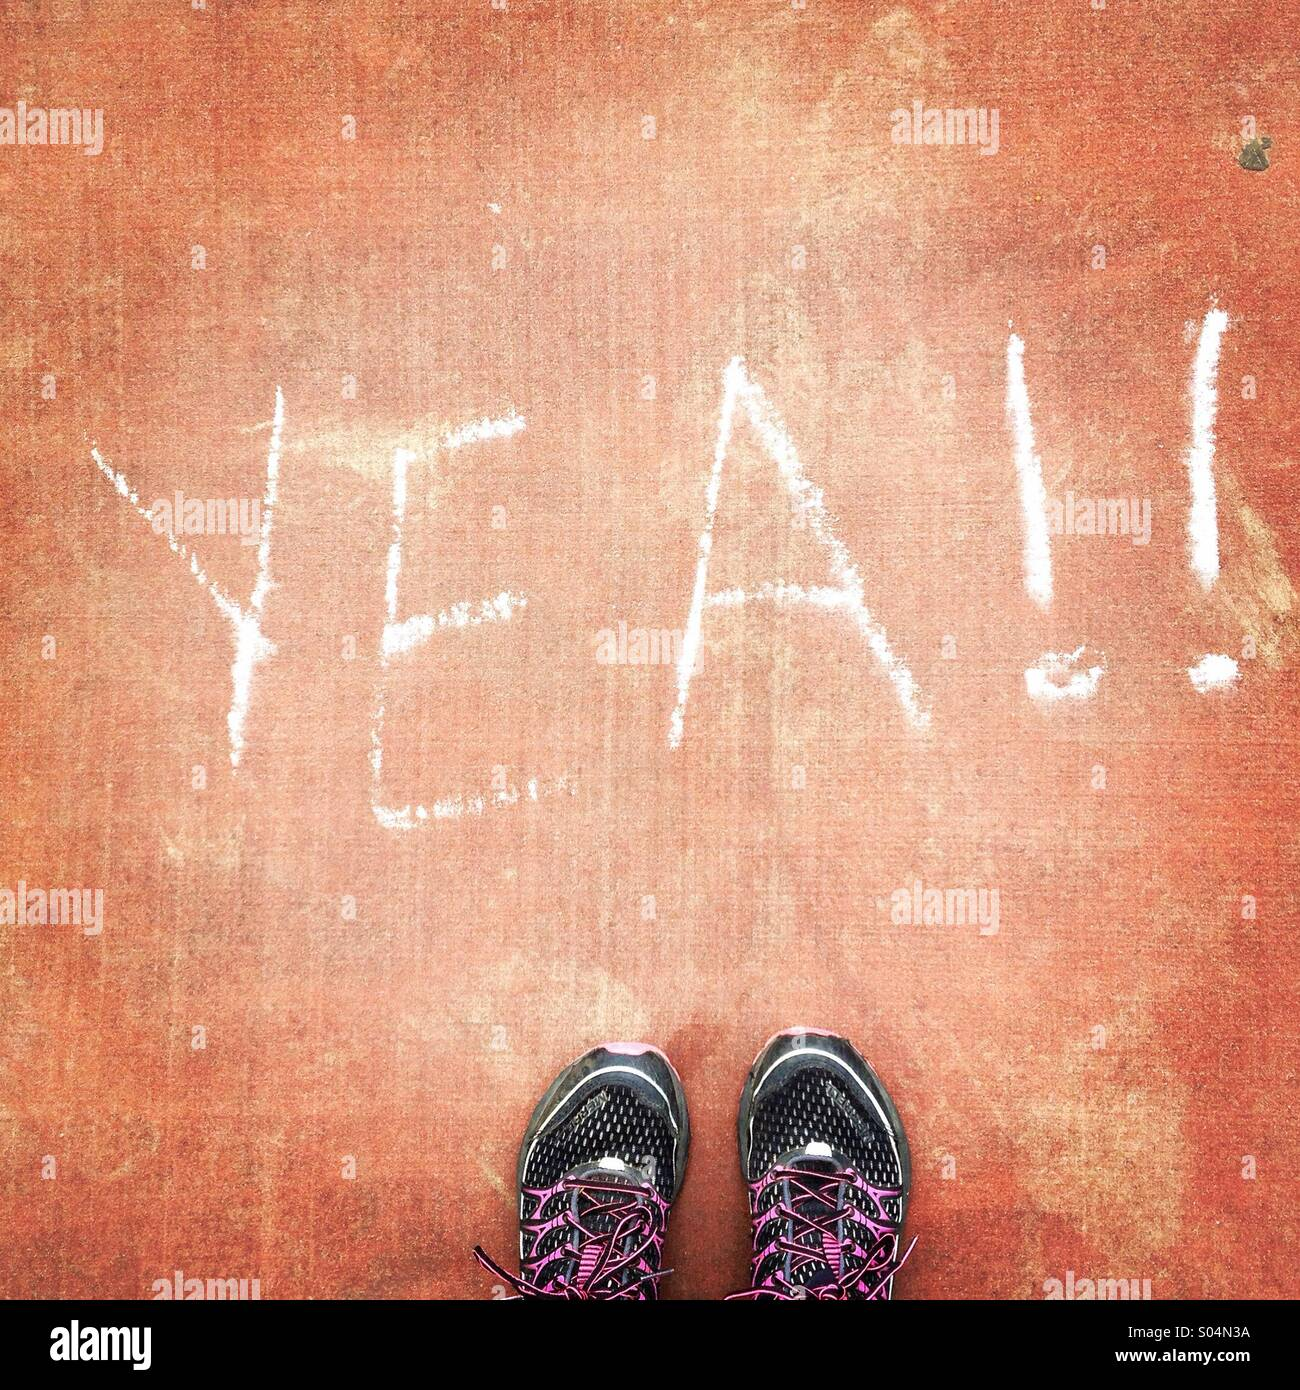 Inspirational chalk message 'yea!' with tennis shoes - Stock Image